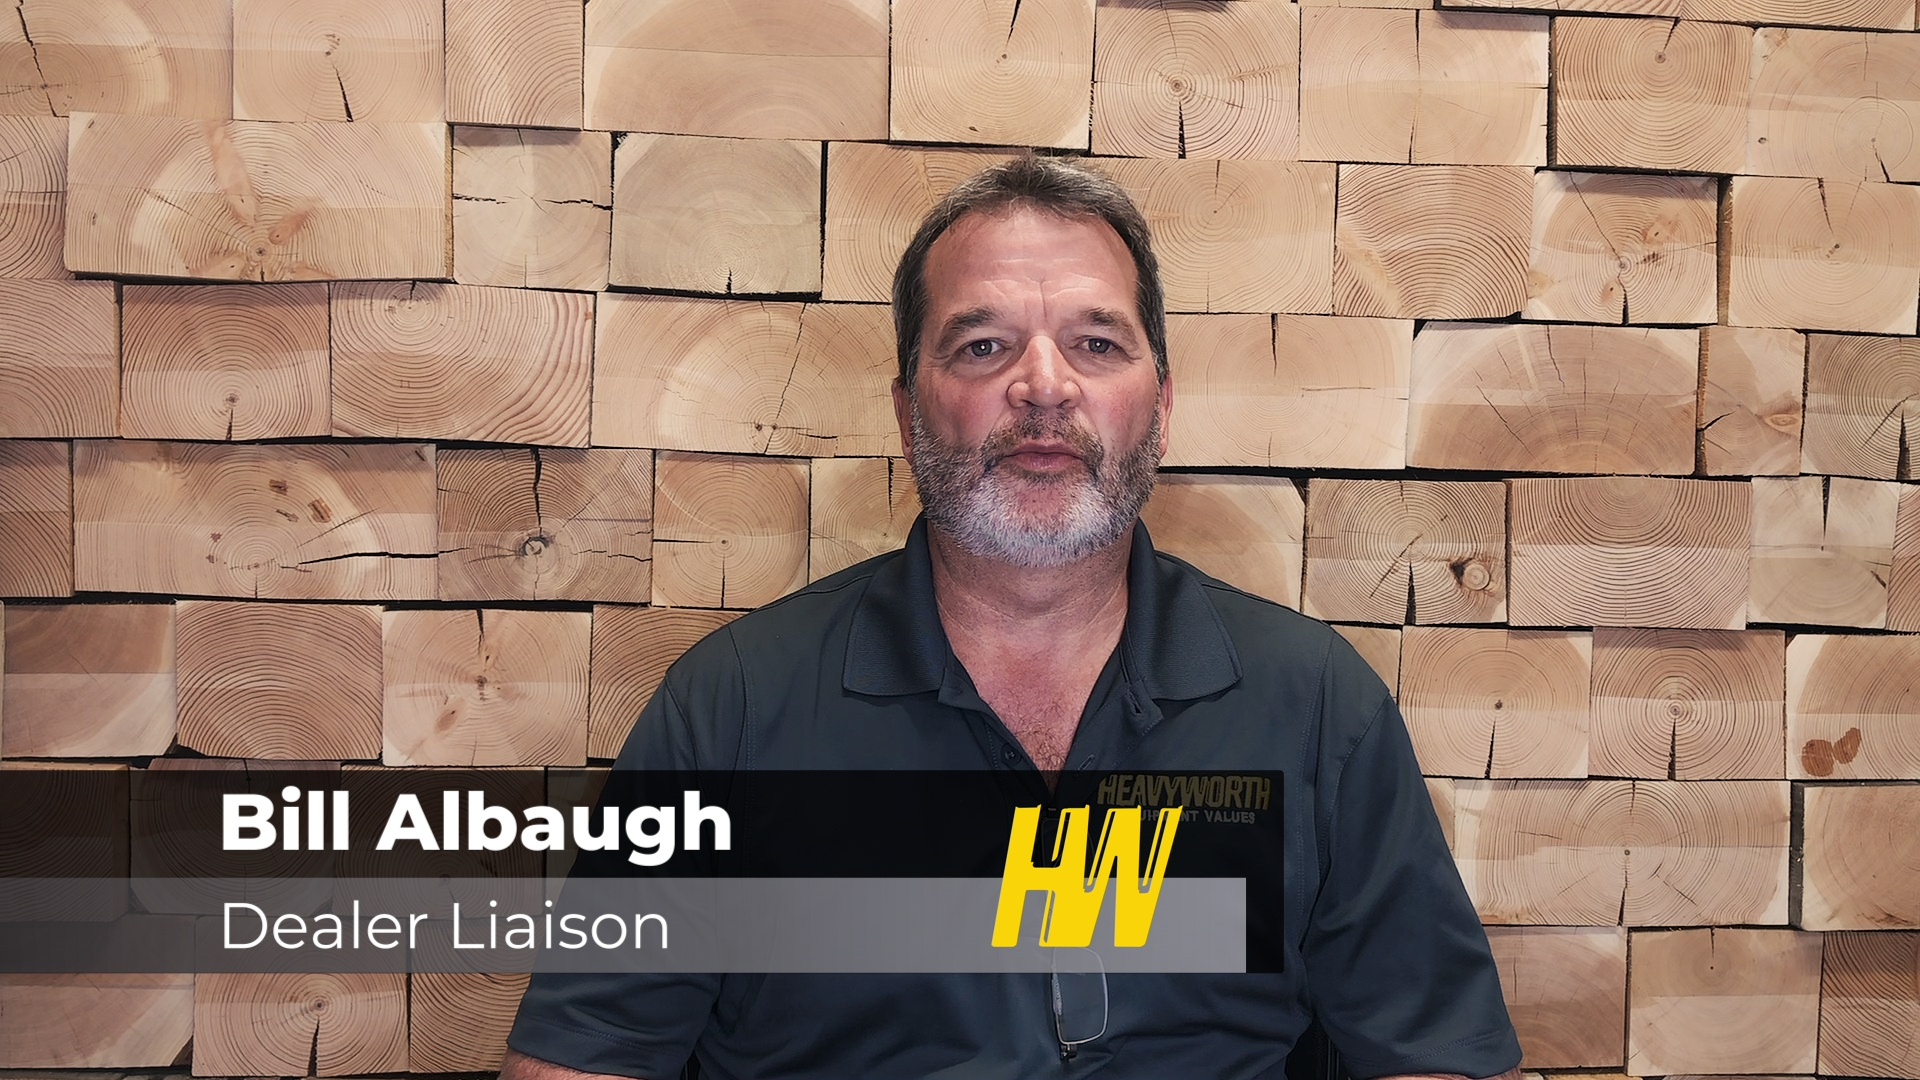 Bill Albaugh explains how condition impacts equipment values